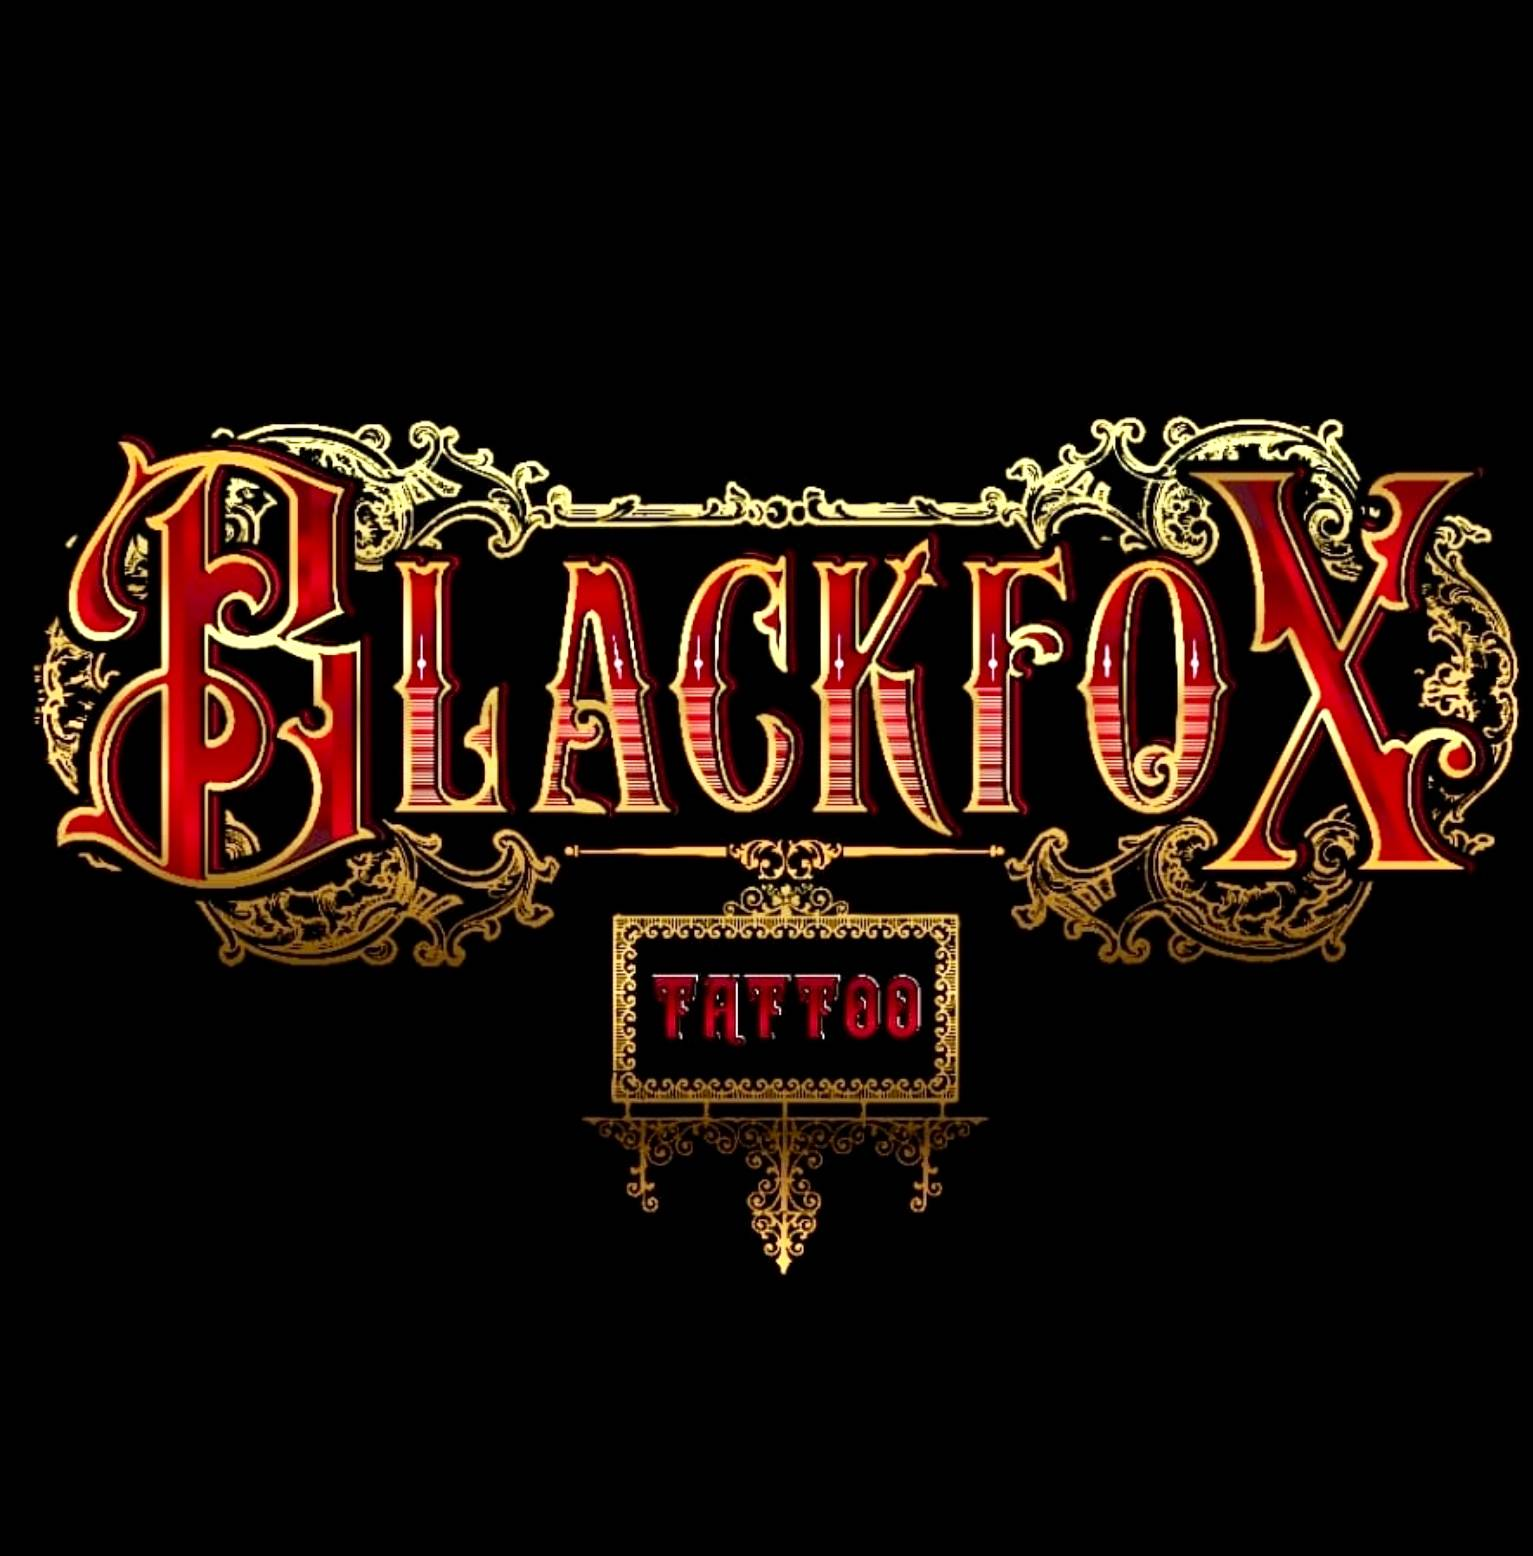 Black Fox Tattoo Studio is a Official Stockist of Aussie Inked Tattoo Care